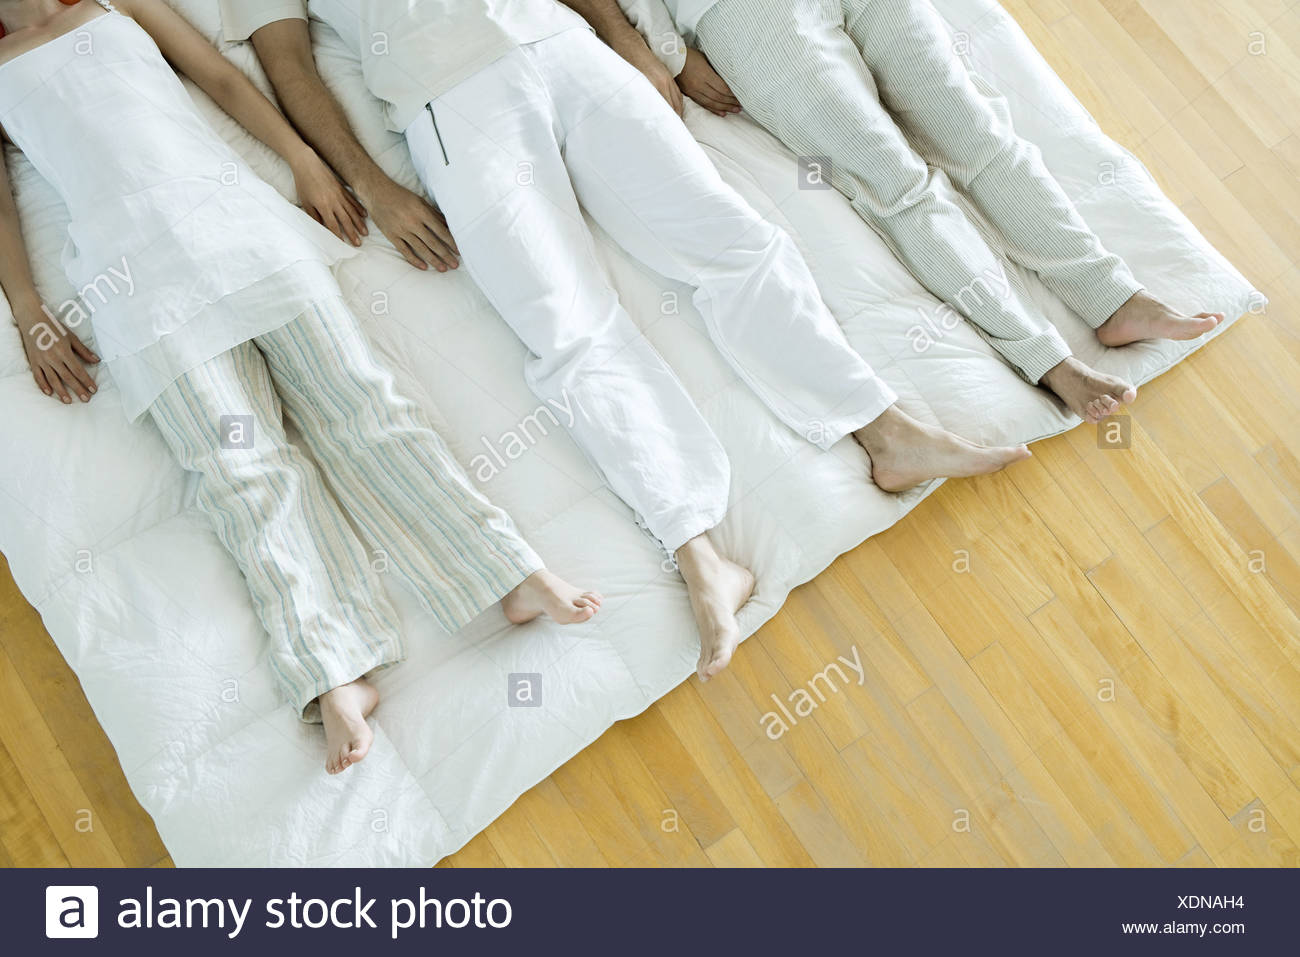 Group therapy, three adults lying side by side - Stock Image